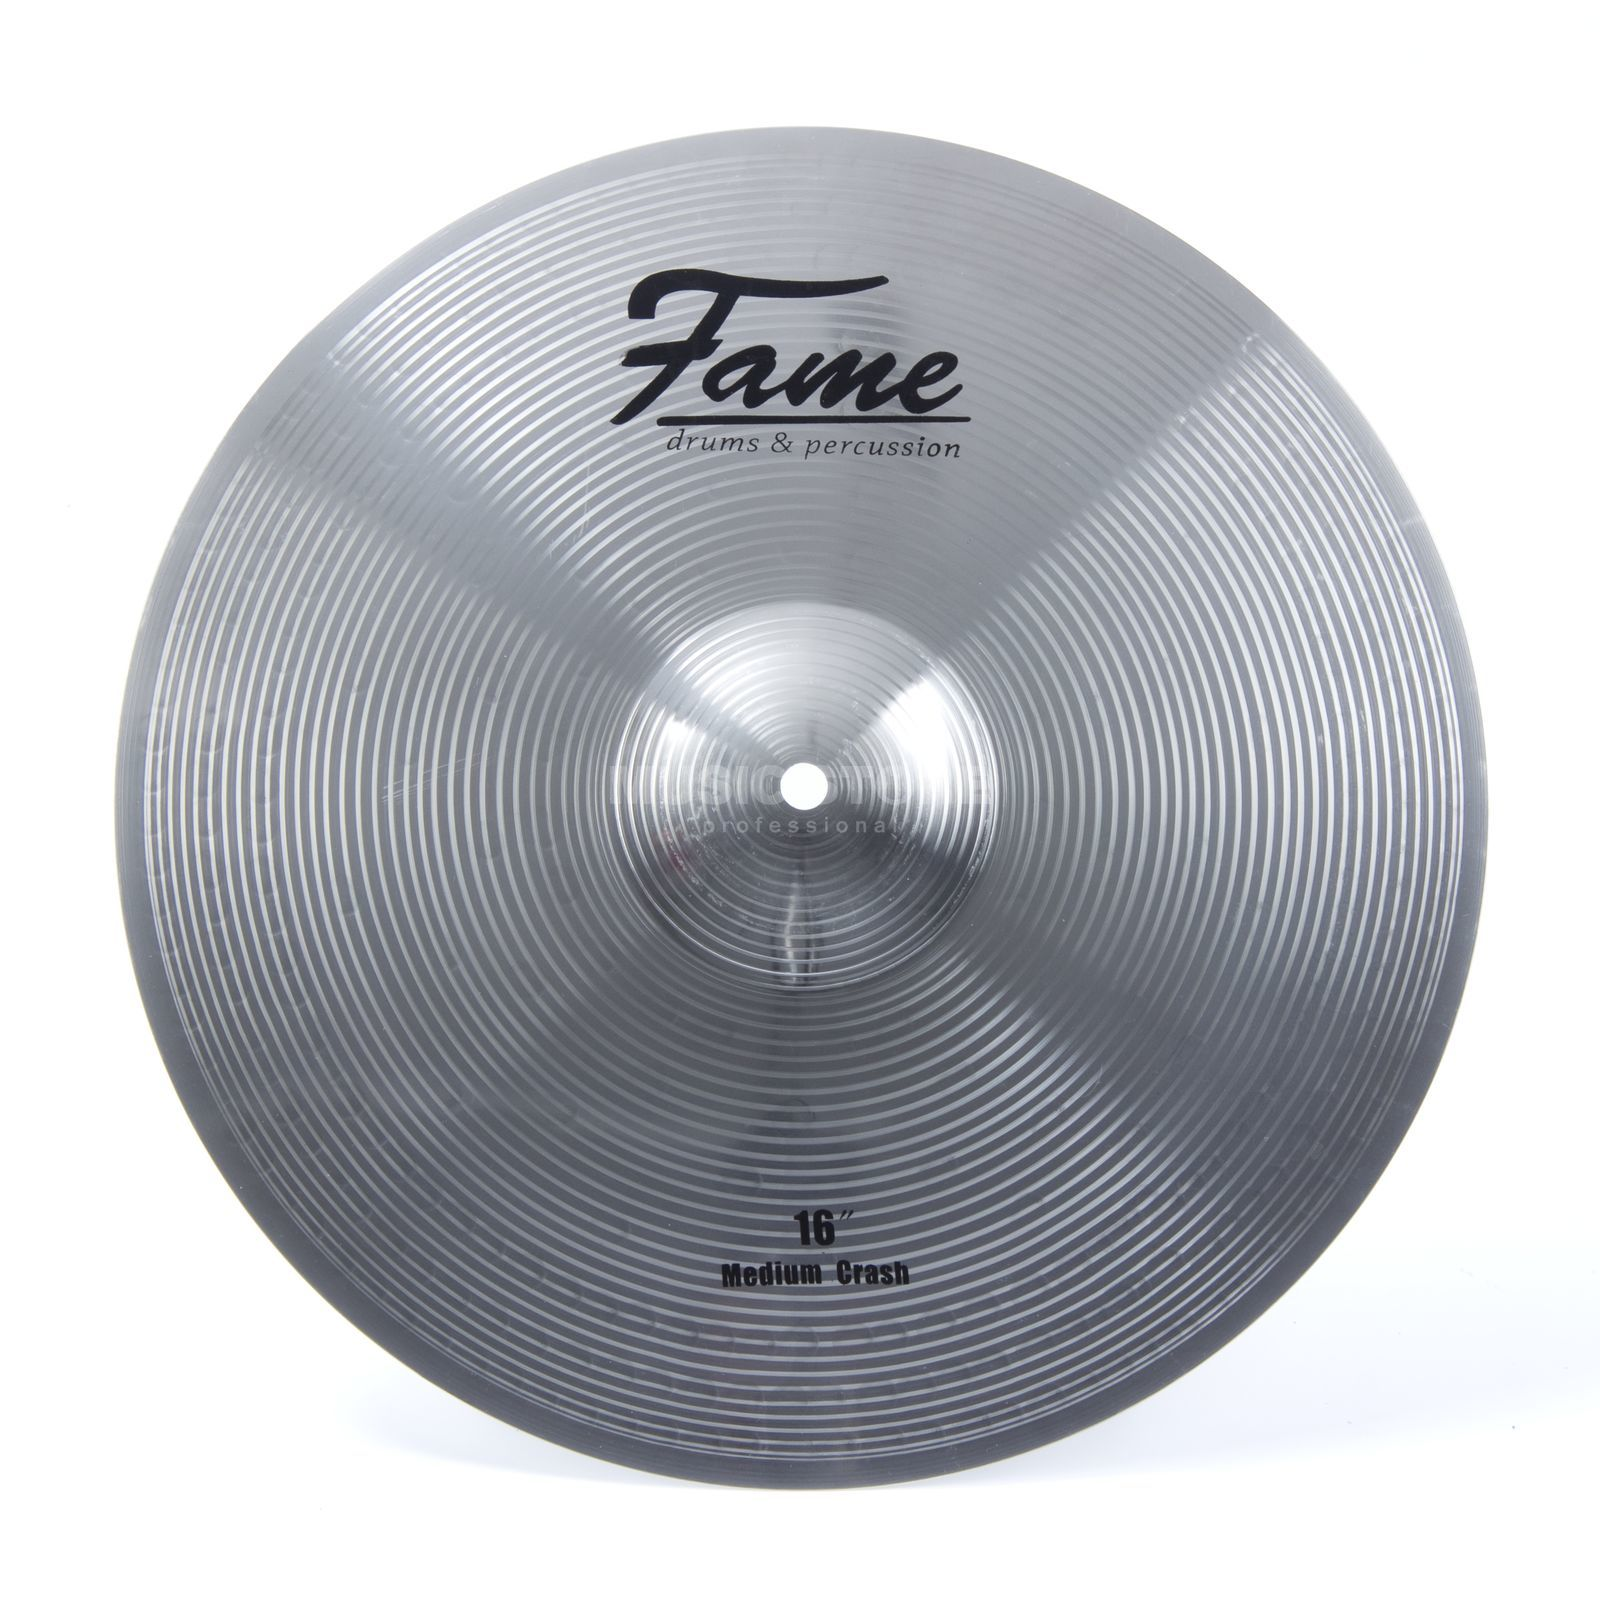 "Fame Reflex Crash 16""  Product Image"